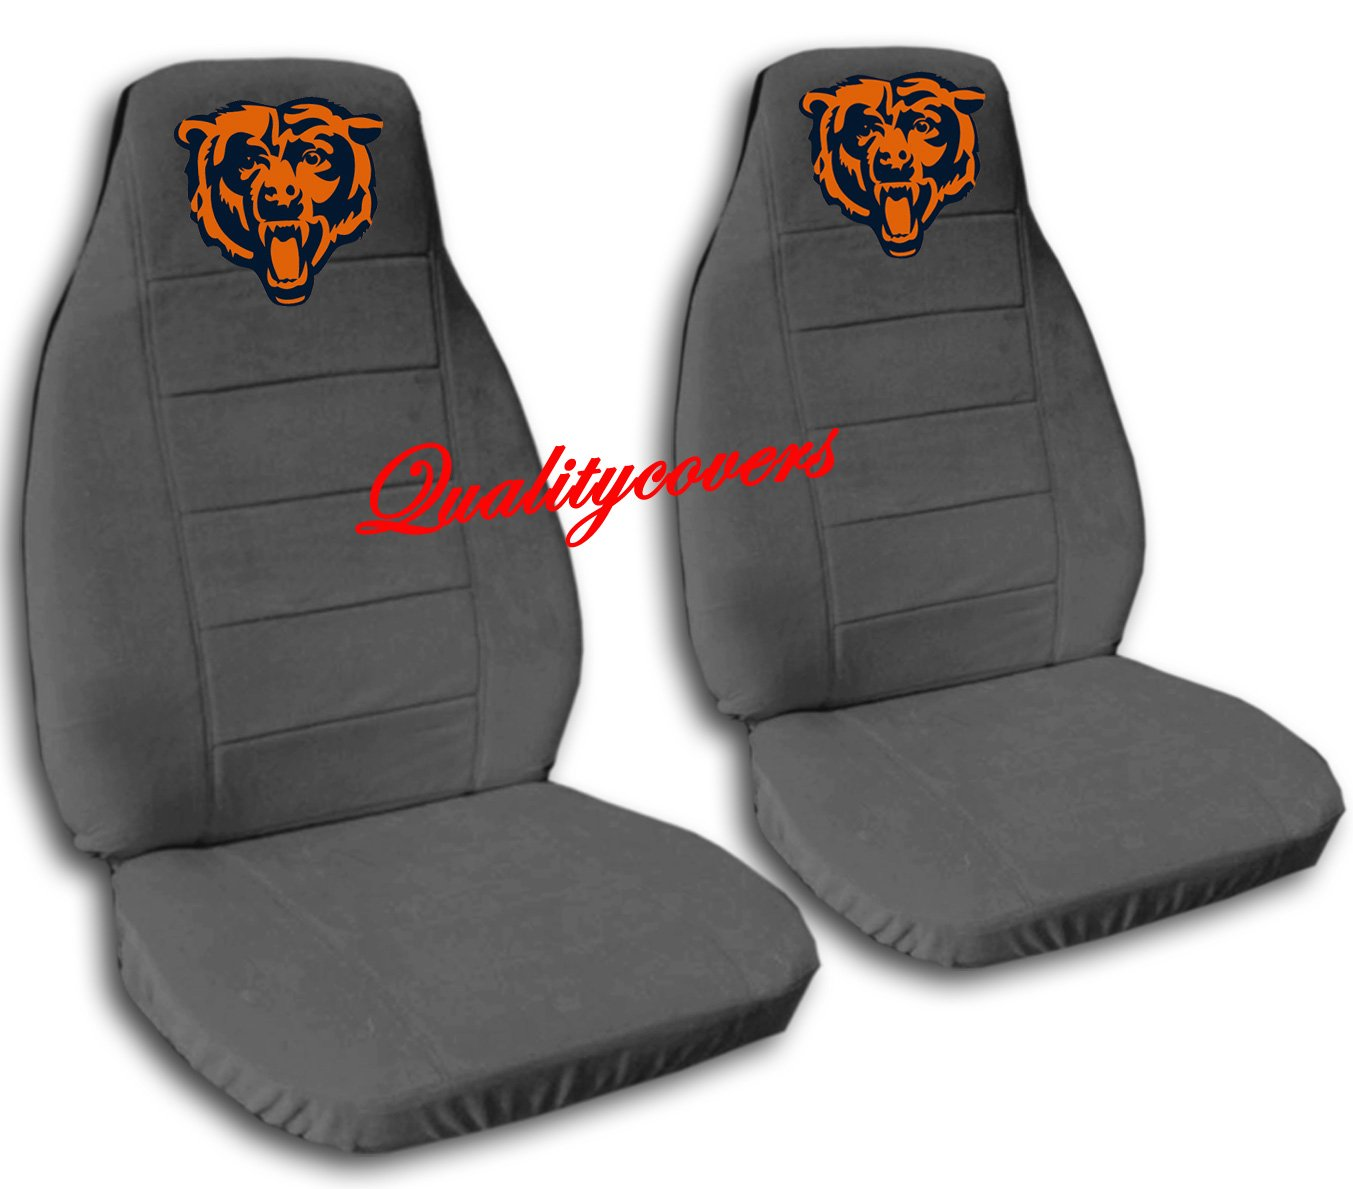 2 Charcoal Chicago seat covers for a 2007 to 2012 Chevrolet Silverado. Side airbag friendly.